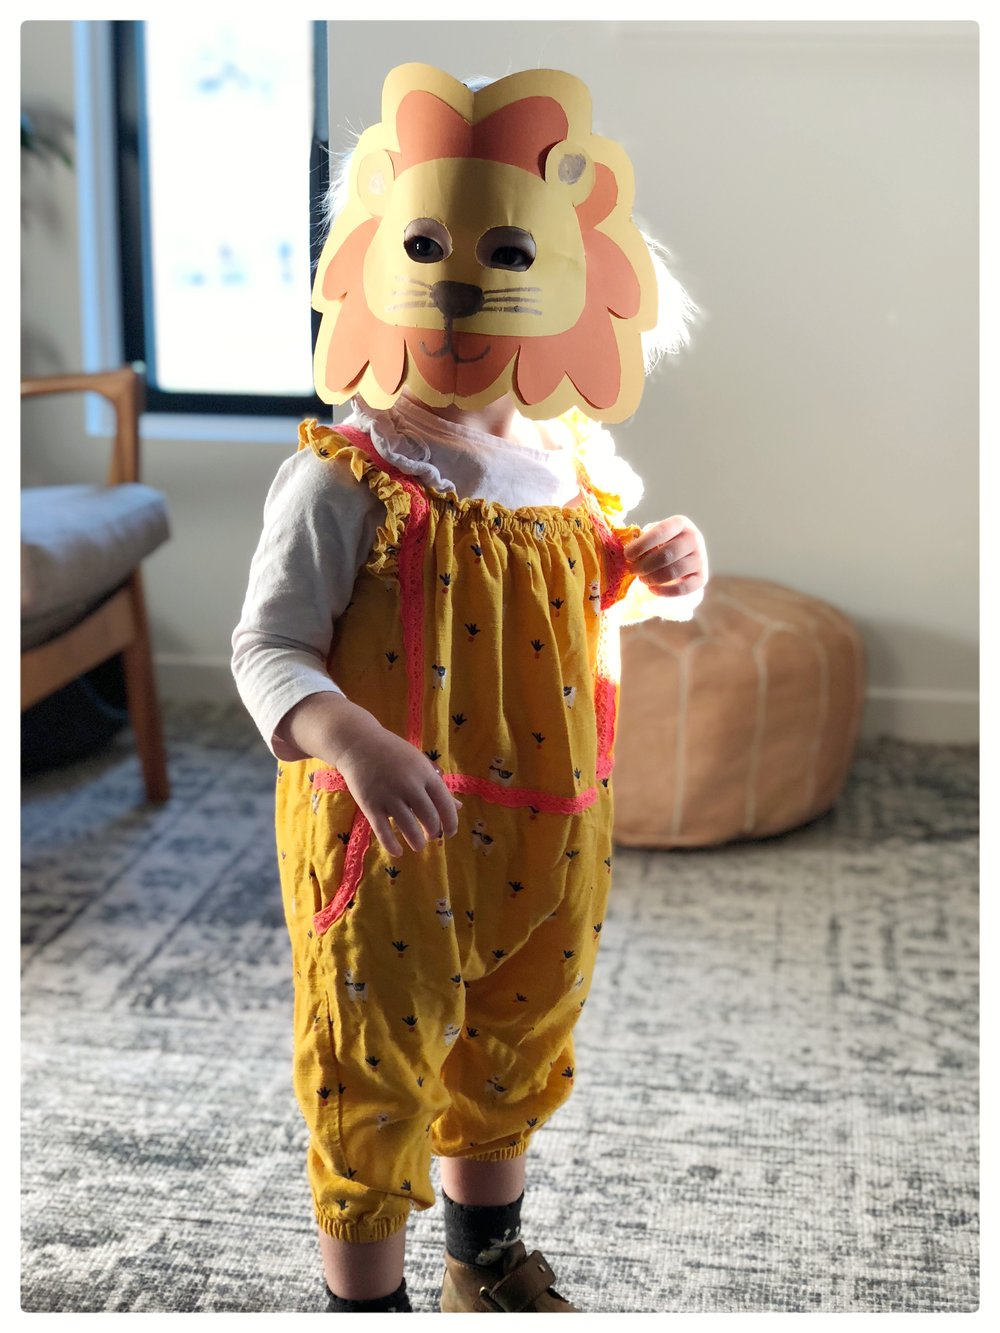 Our little lion dressed up for Halloween.